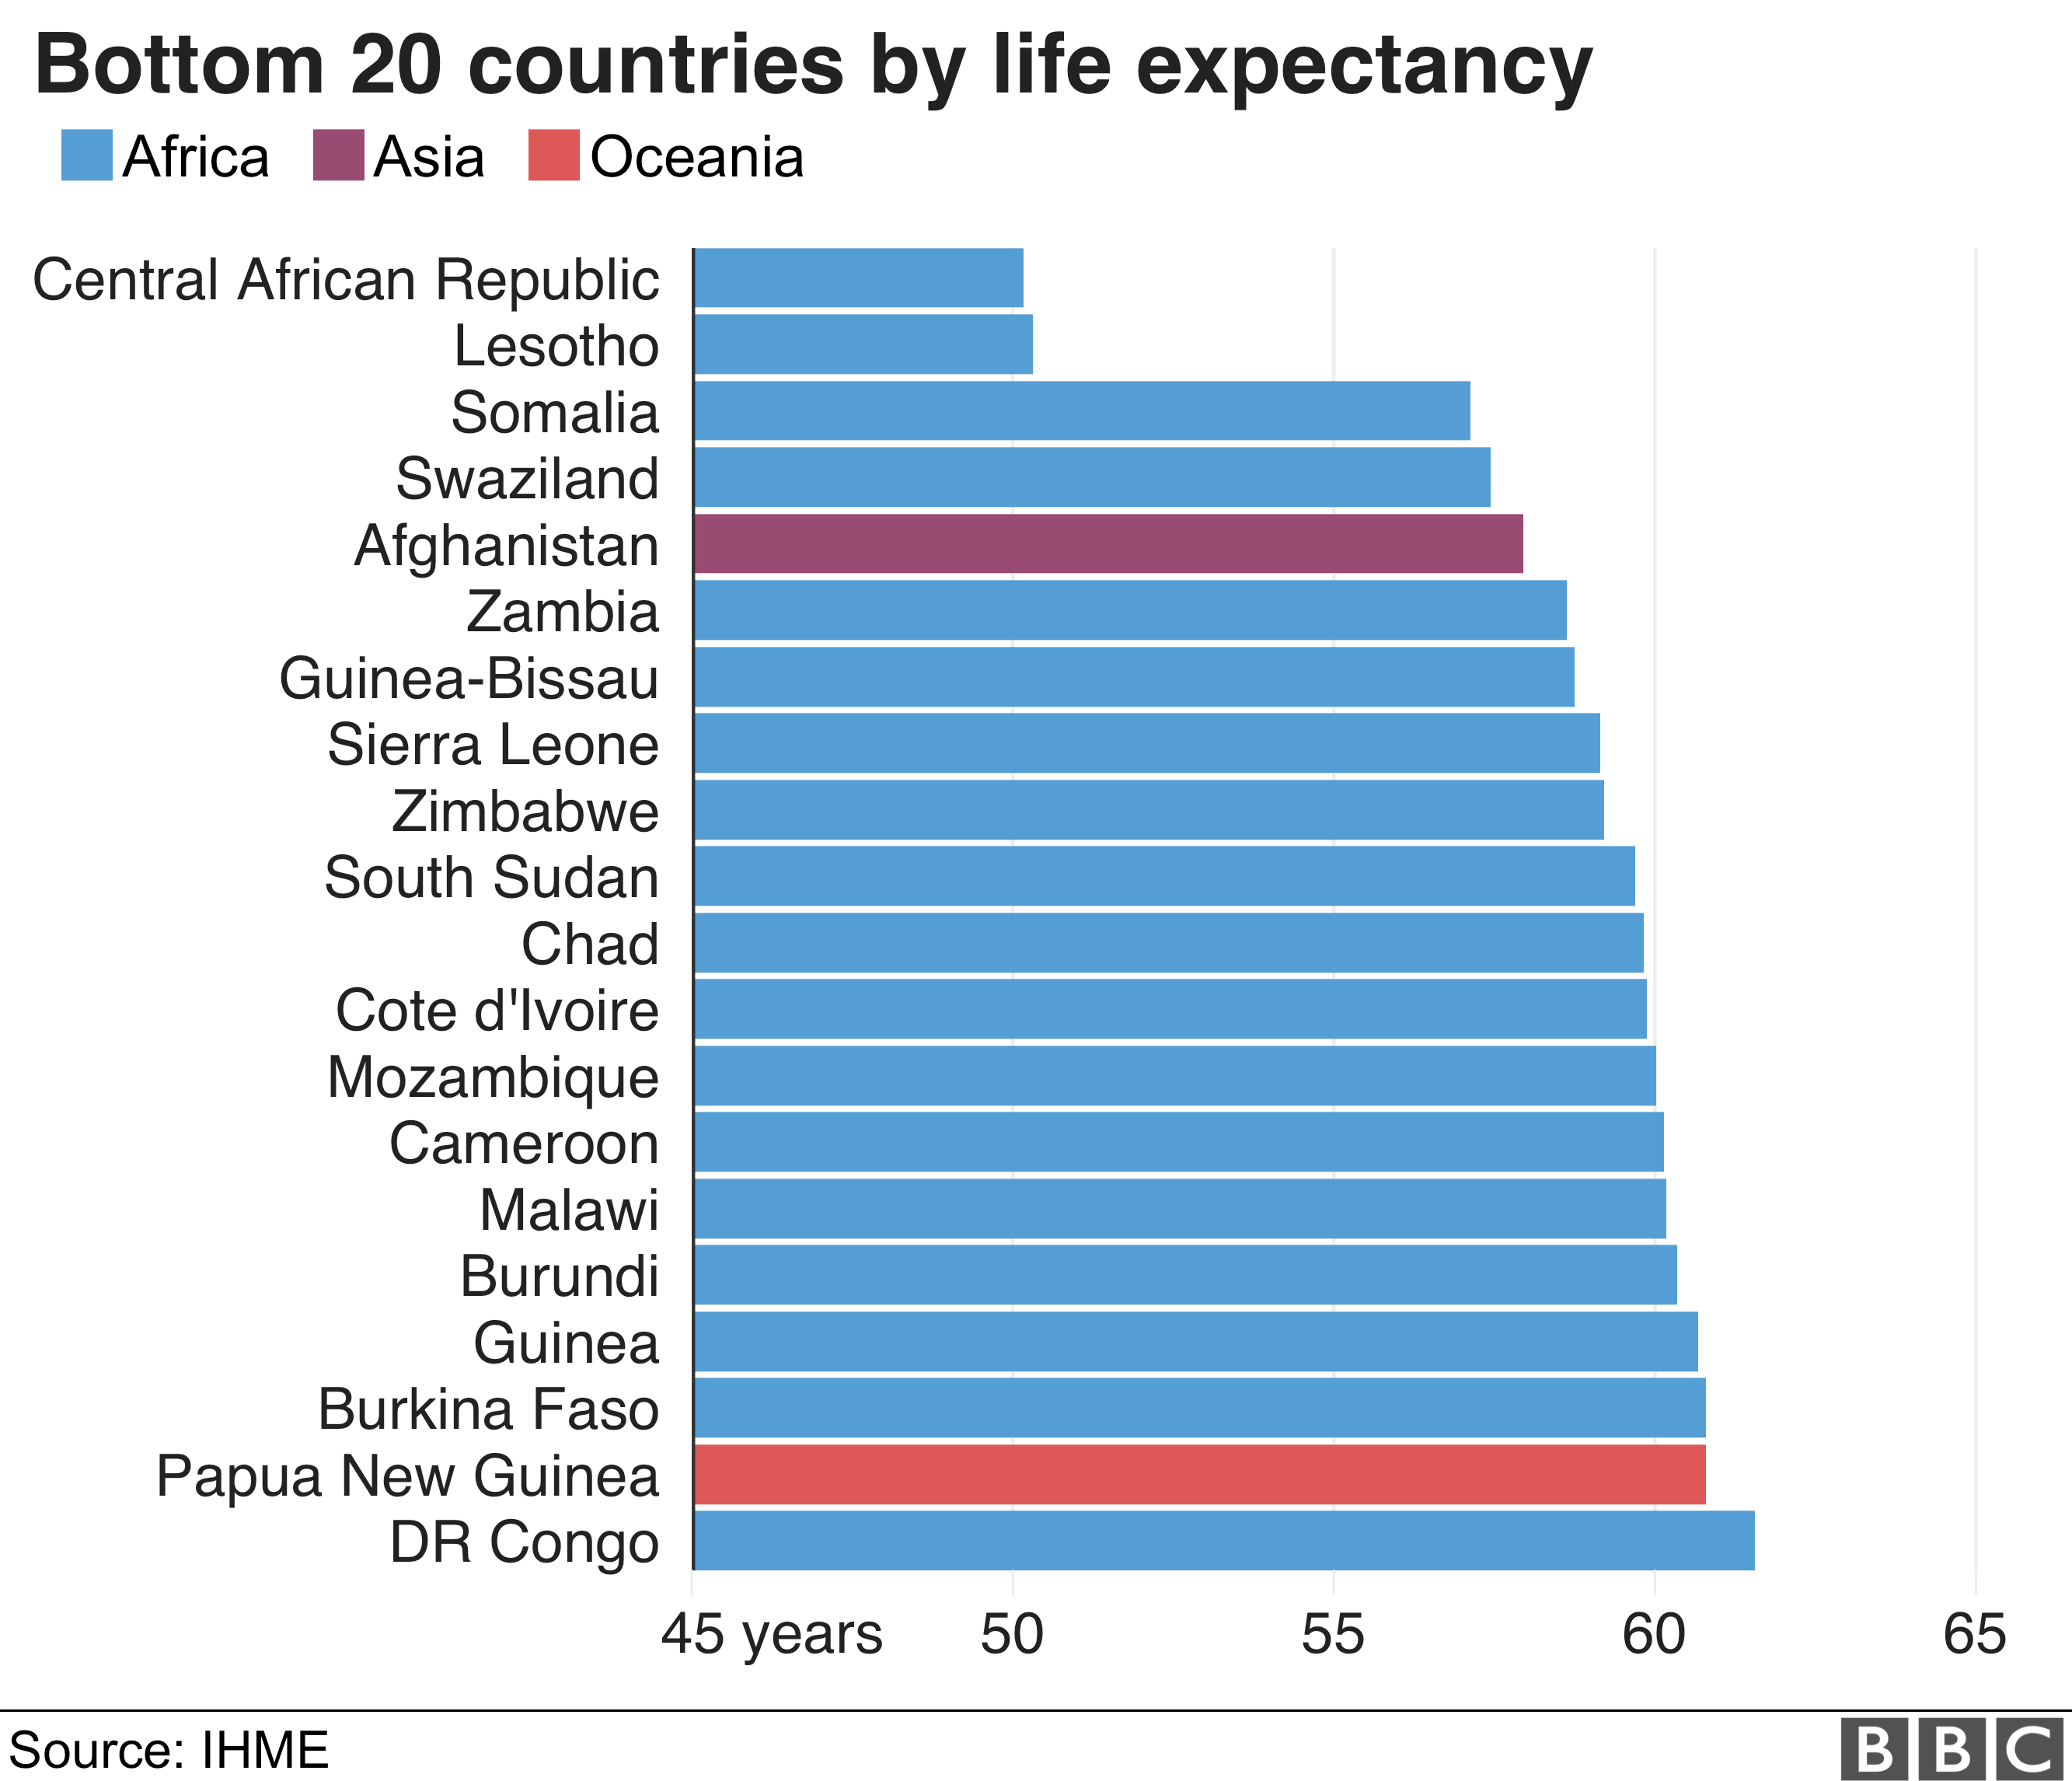 The bottom 20 countries in terms of life expectancy are mostly Western European countries